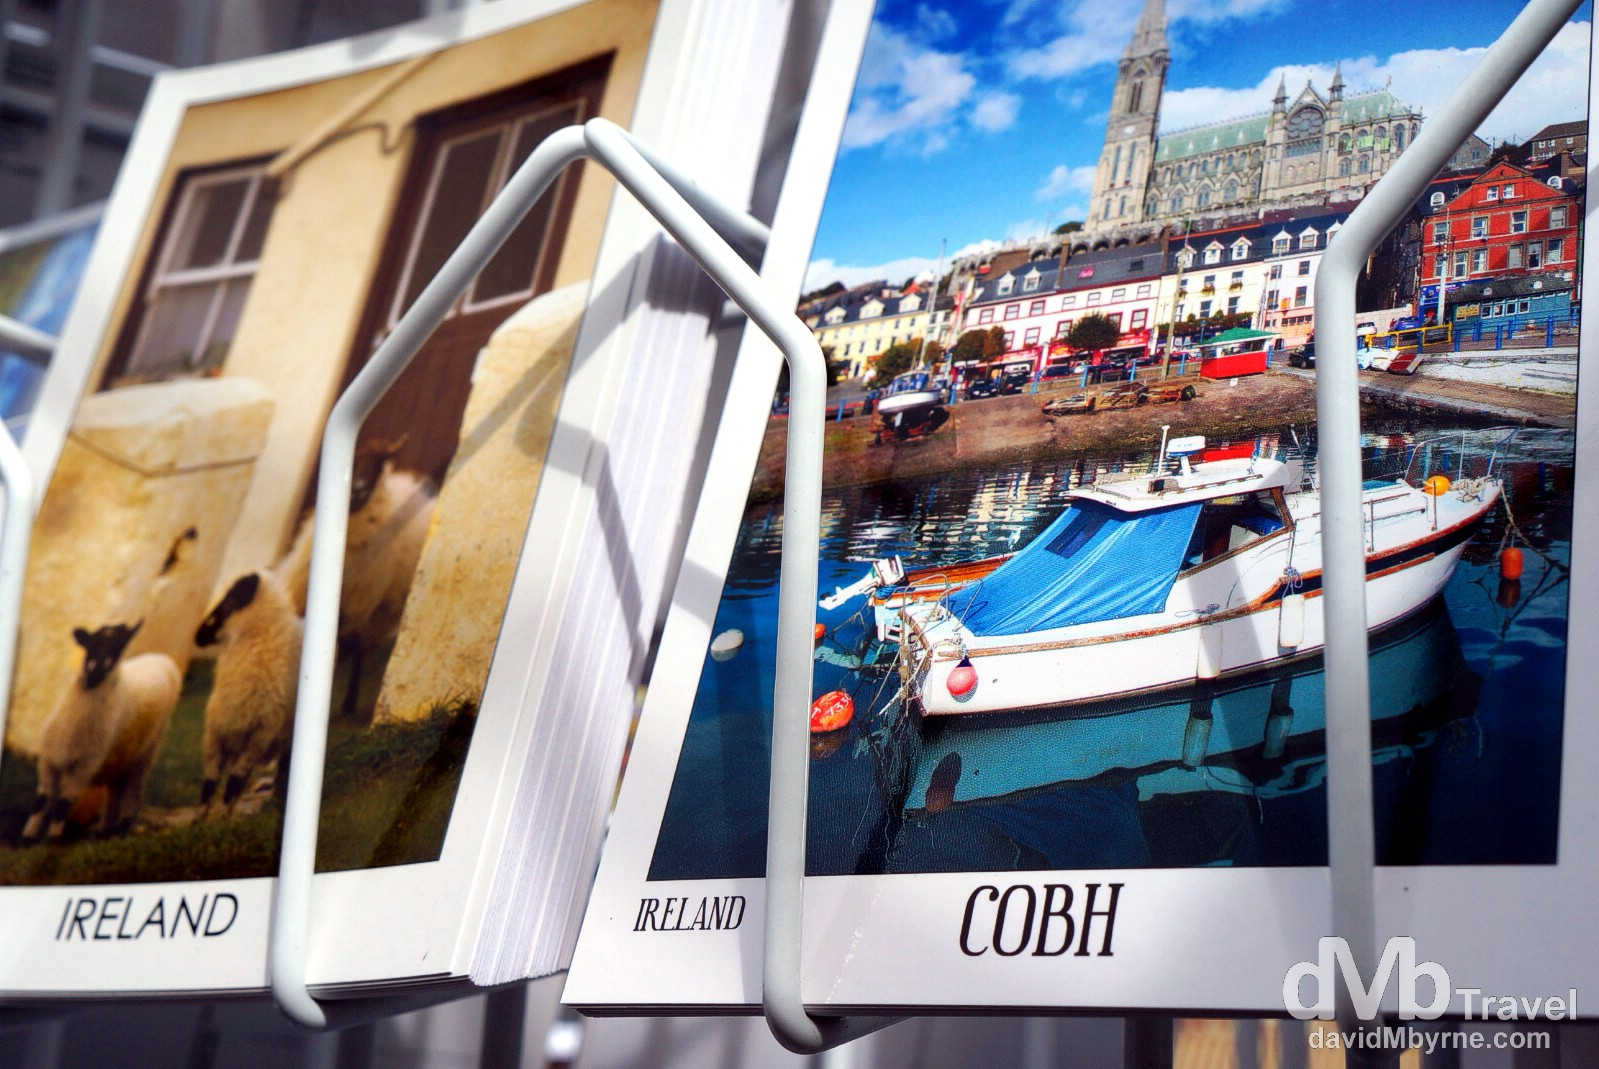 Postcards on sale in Cobh, Co. Cork, Ireland. August 29, 2014.